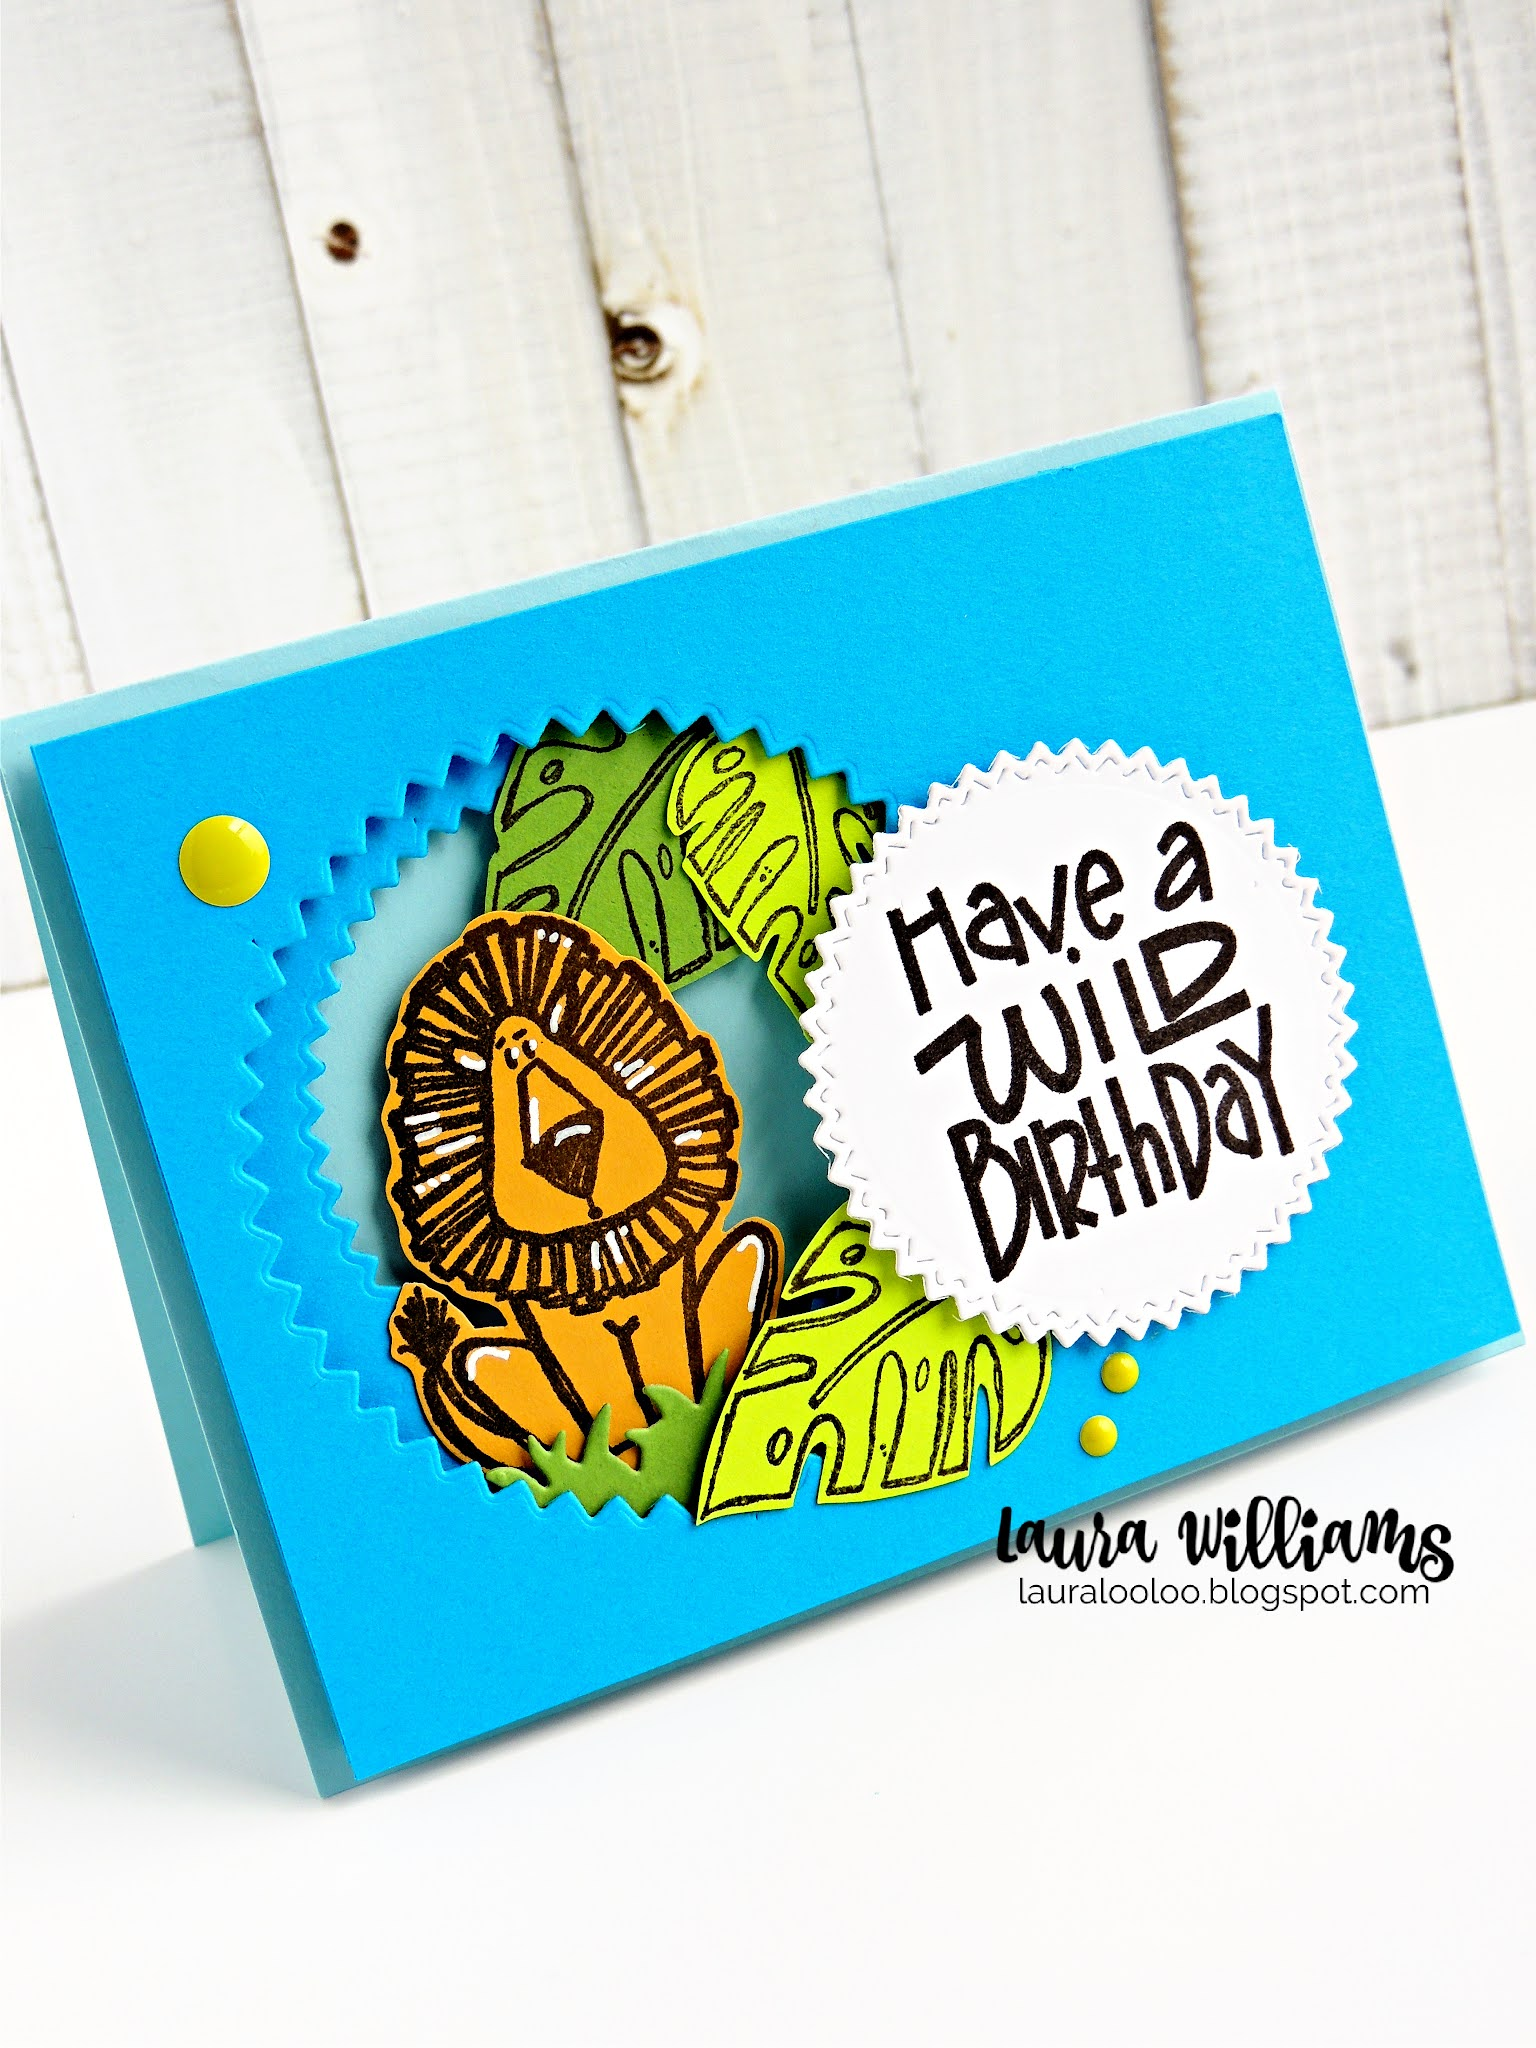 Have a Wild Birthday - Tunnel Card Idea and Tutorial with Impression Obsession Stamps and Dies. Check out these ideas to create a simple tunnel card with foam adhesive and nesting dies.